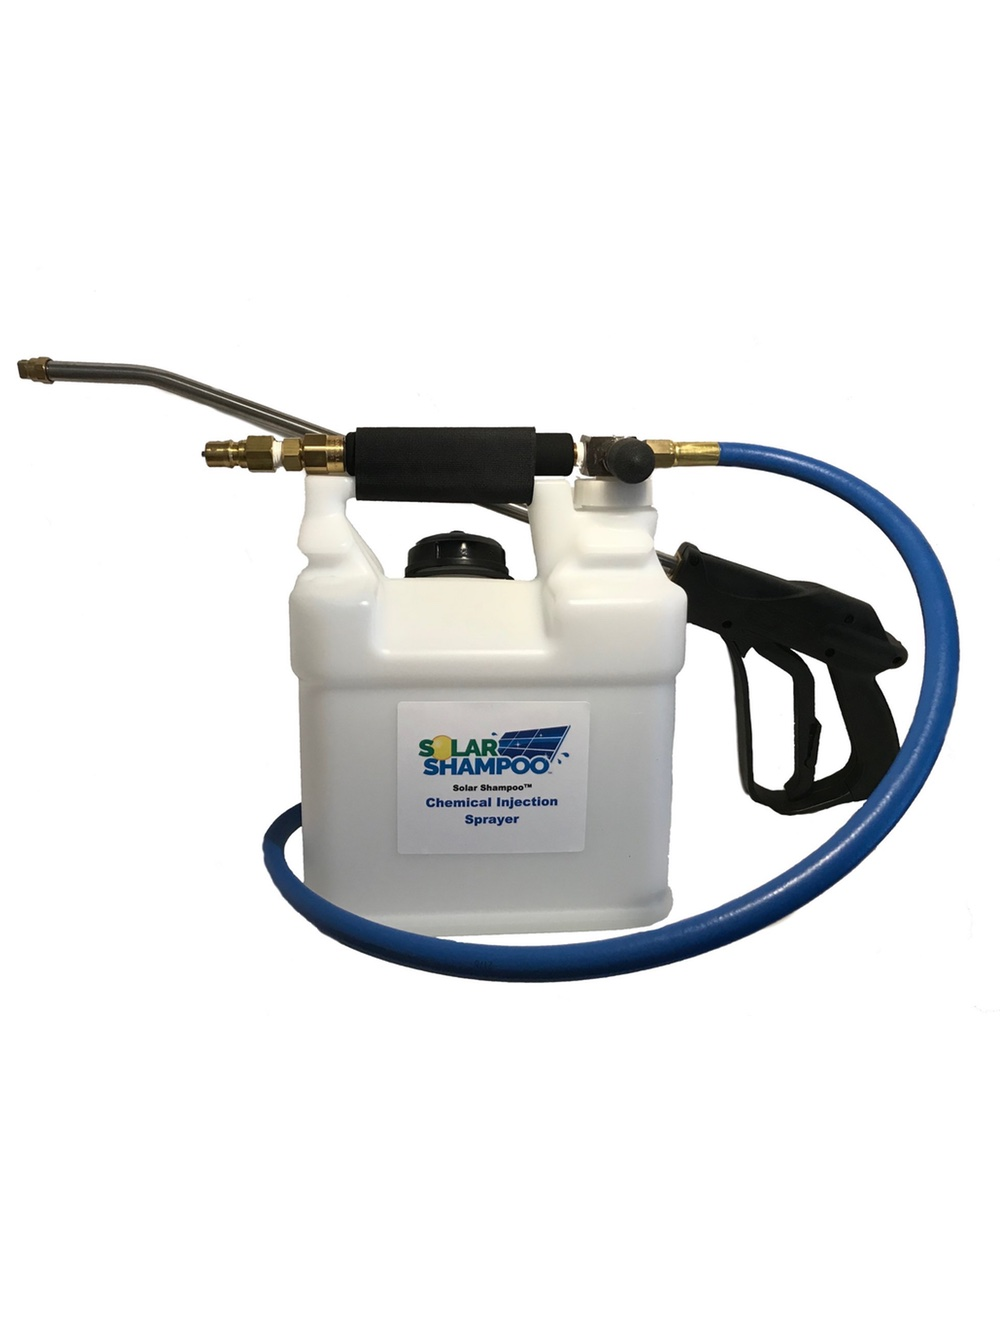 Solar Panel Chemical Sprayer.jpg